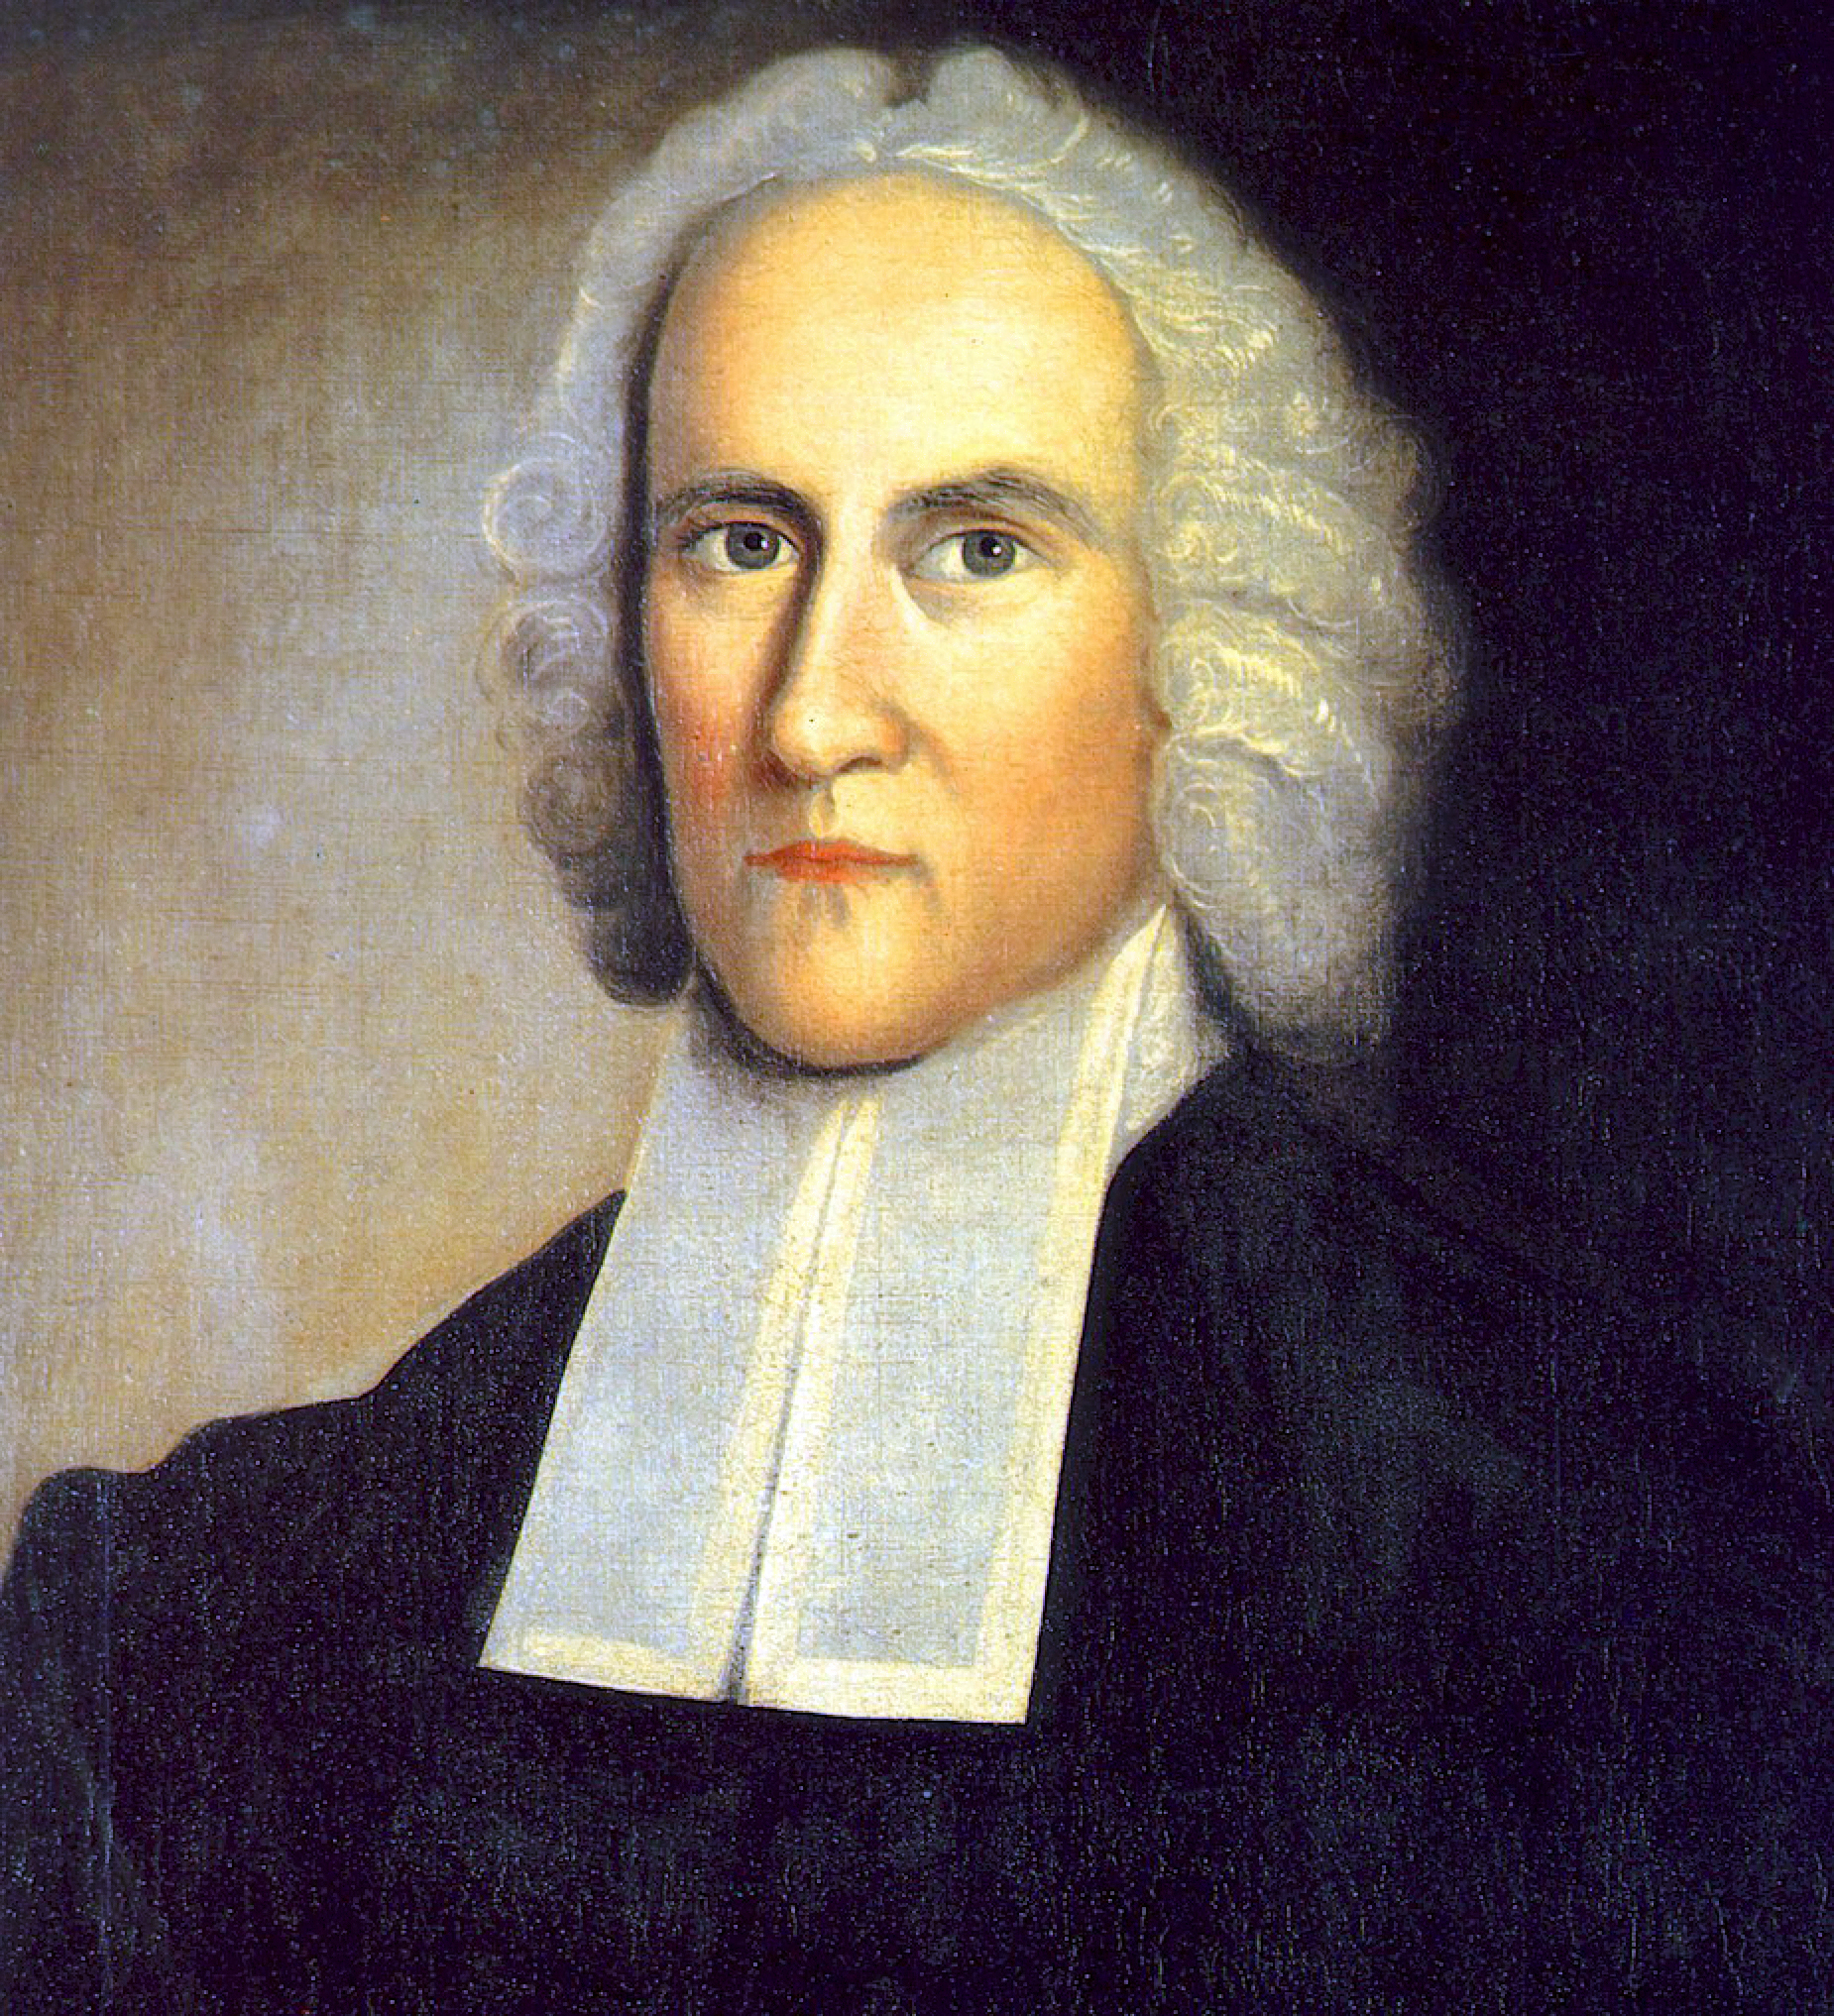 Jonathan Edwards  (October 5, 1703 – March 22, 1758) was an American revivalist preacher, philosopher, and theologian. He played a critical role in shaping the First Great Awakening, and oversaw some of the first revivals in 1733–35 at his church in Northampton, Massachusetts.